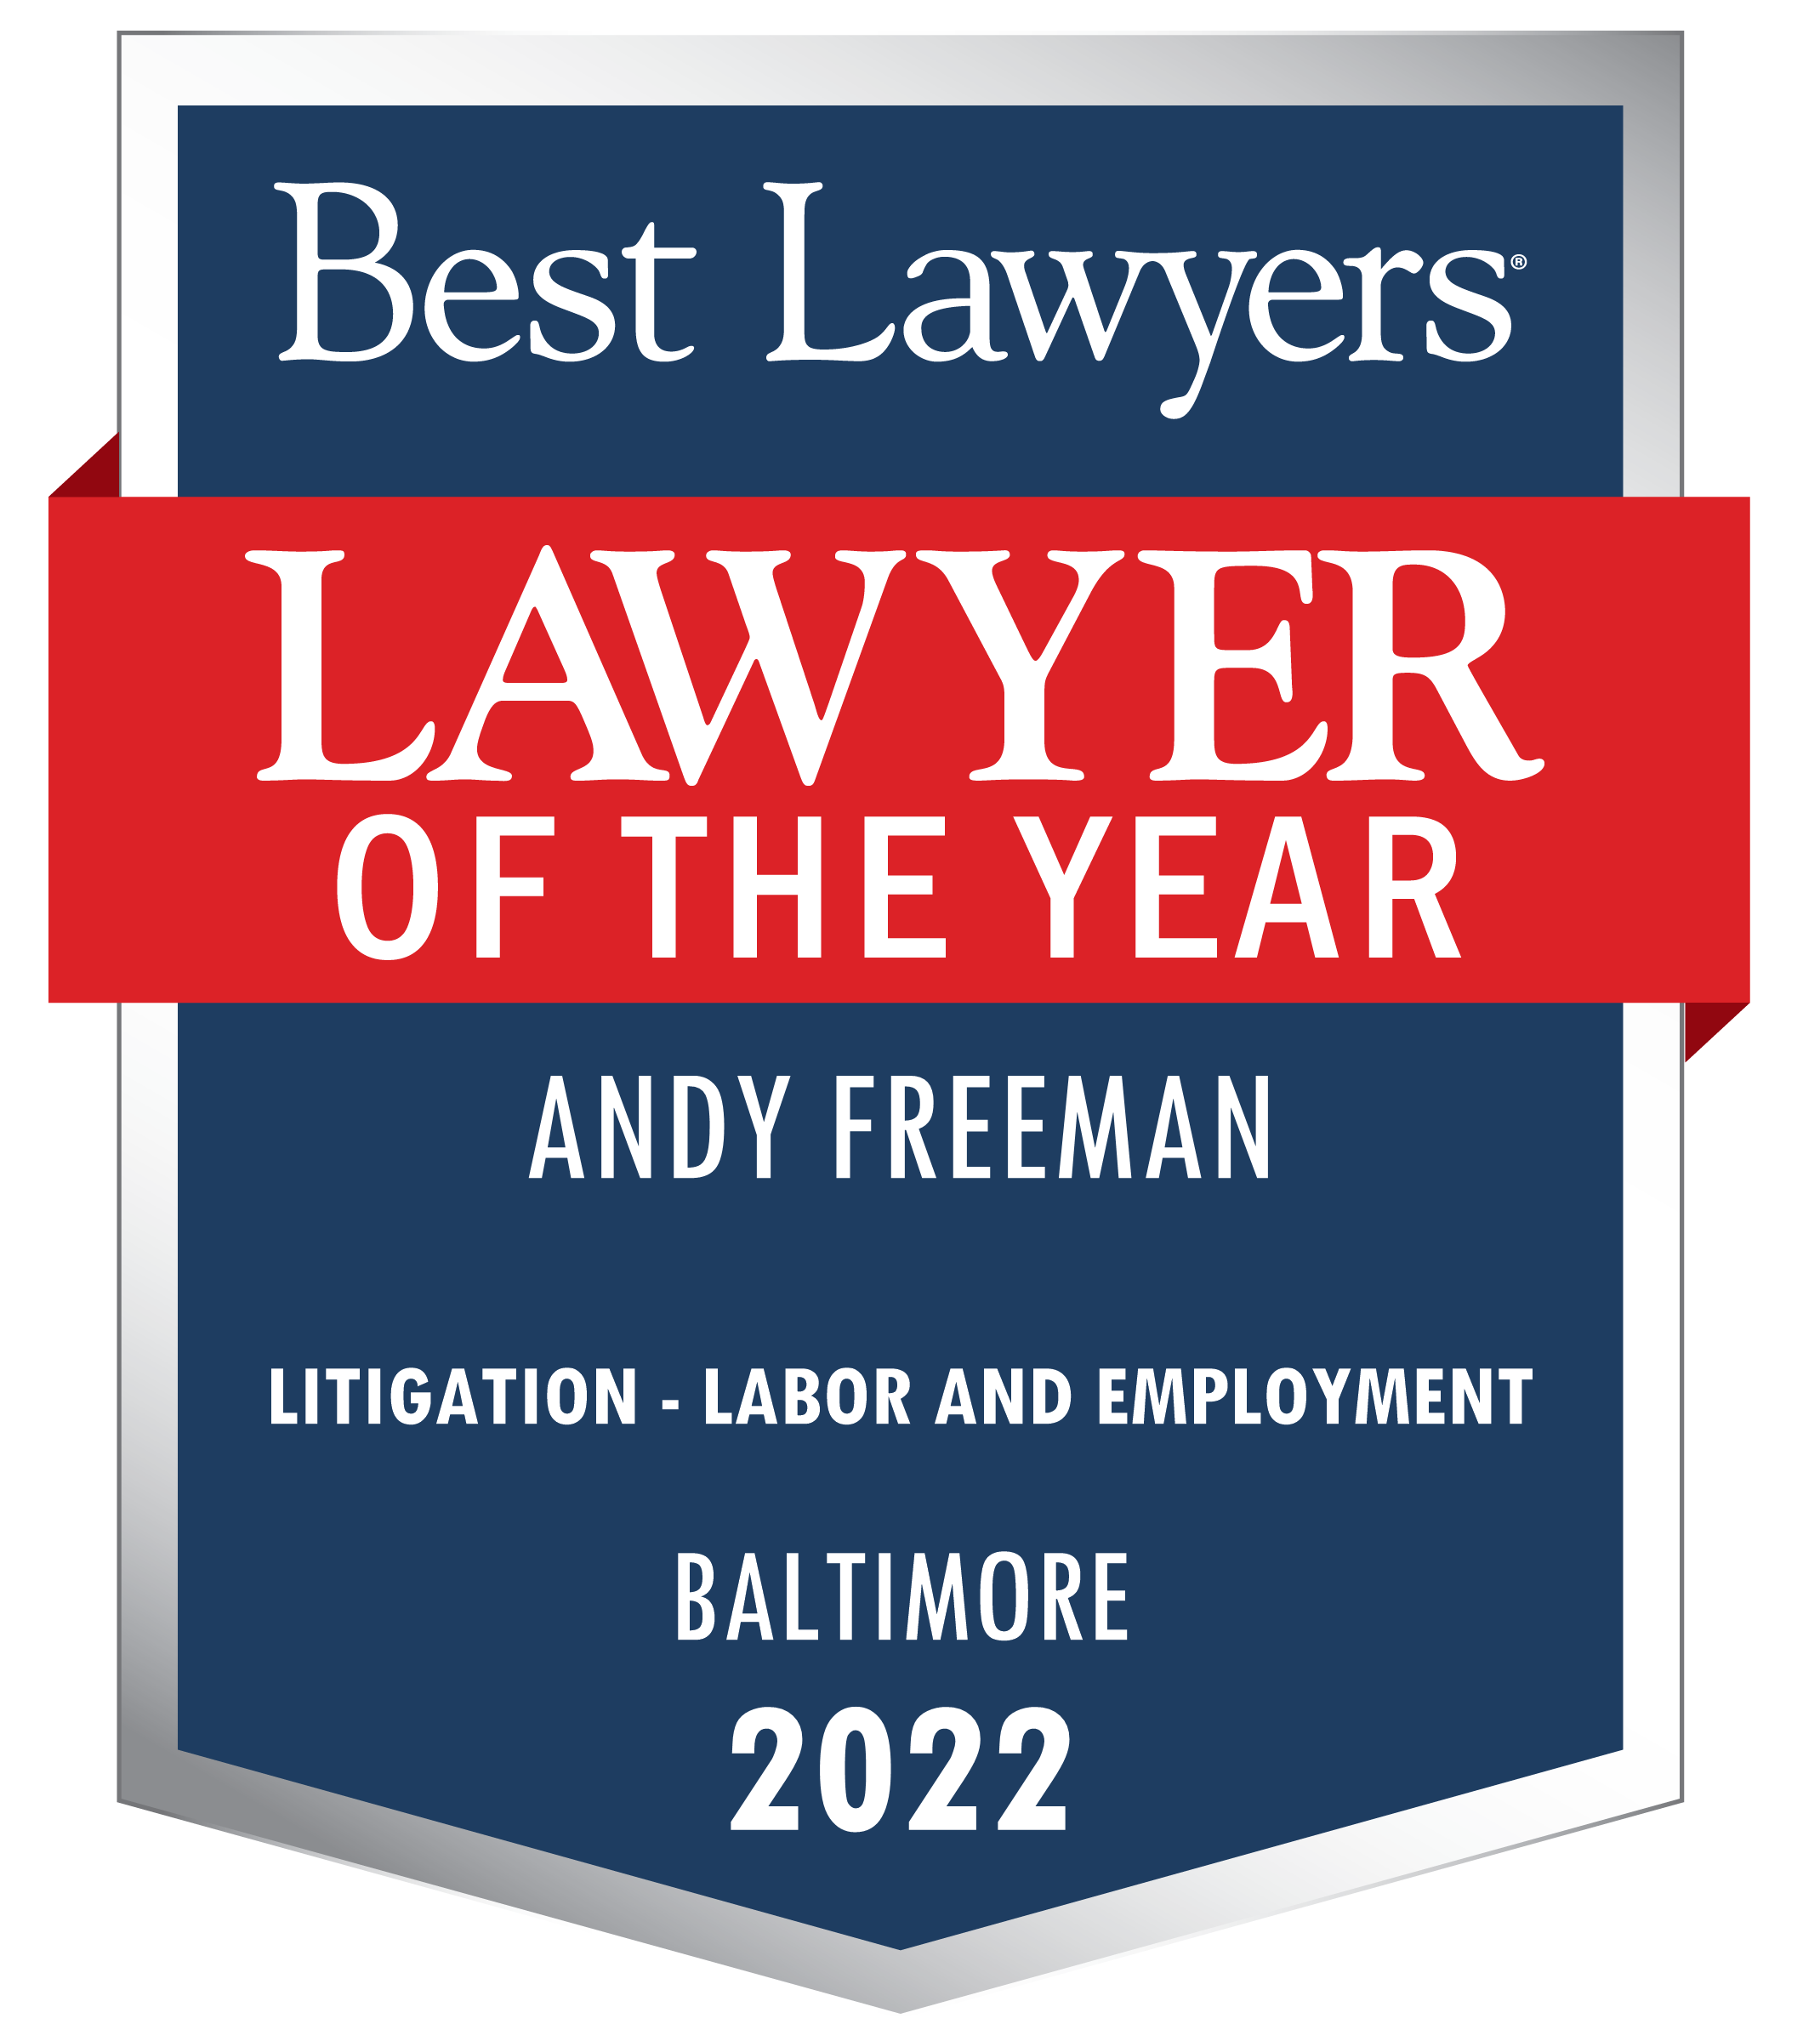 Best Lawyers Lawyer of the Year, Andy Freeman, Litigation - Labor and Employment, Baltimore, 2022